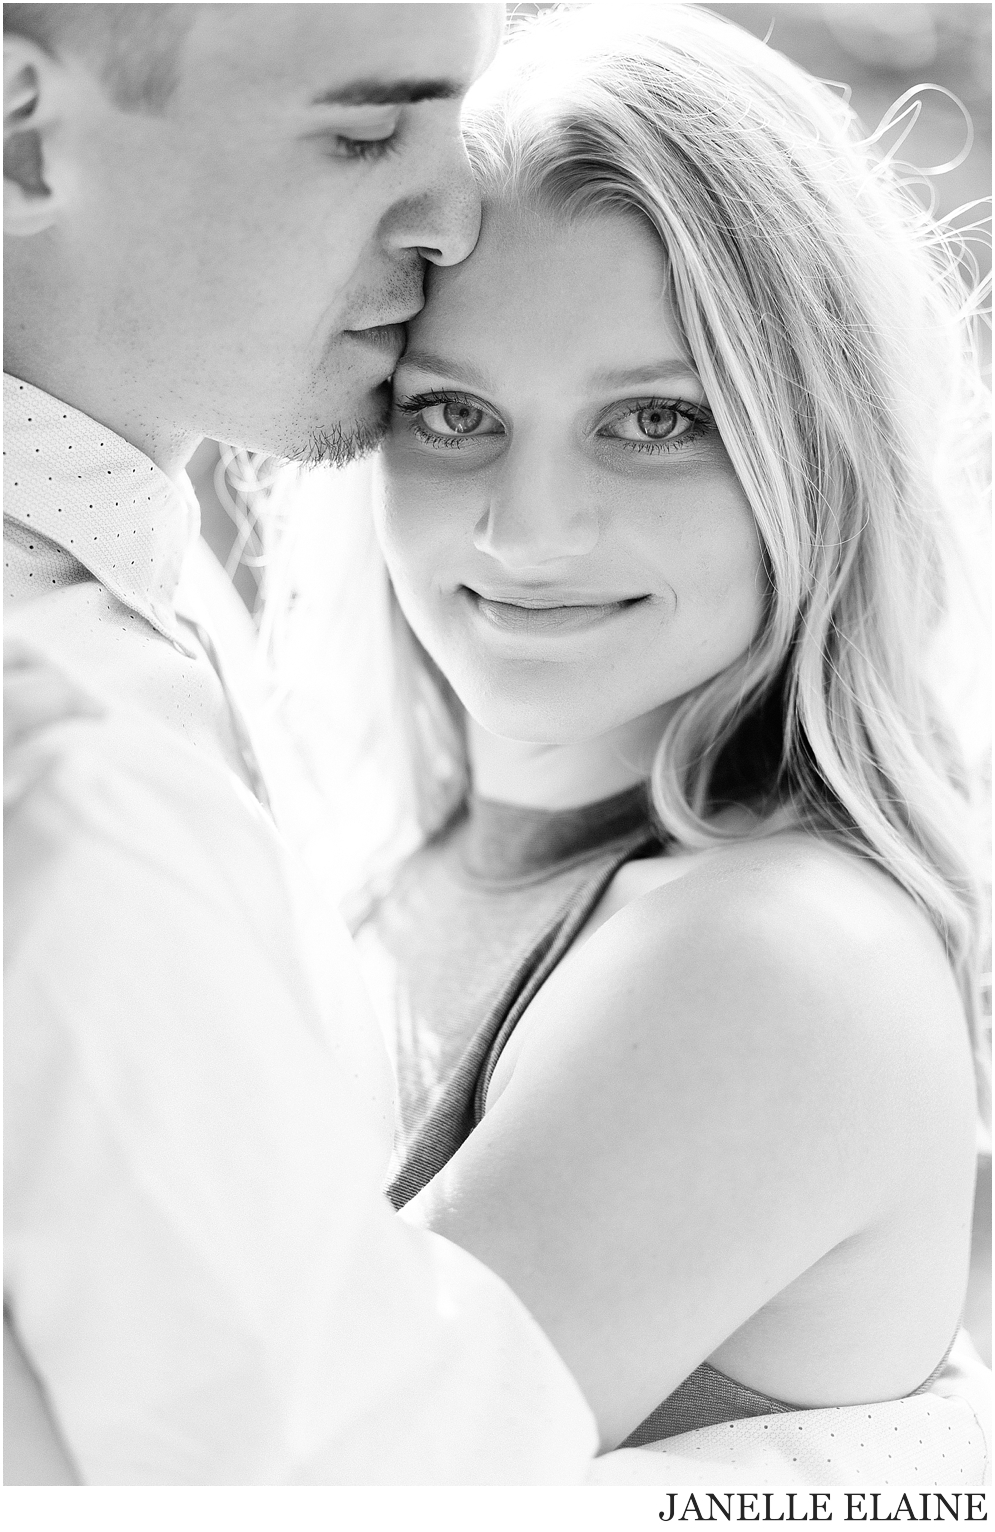 tricia and nate engagement photos-janelle elaine photography-31.jpg